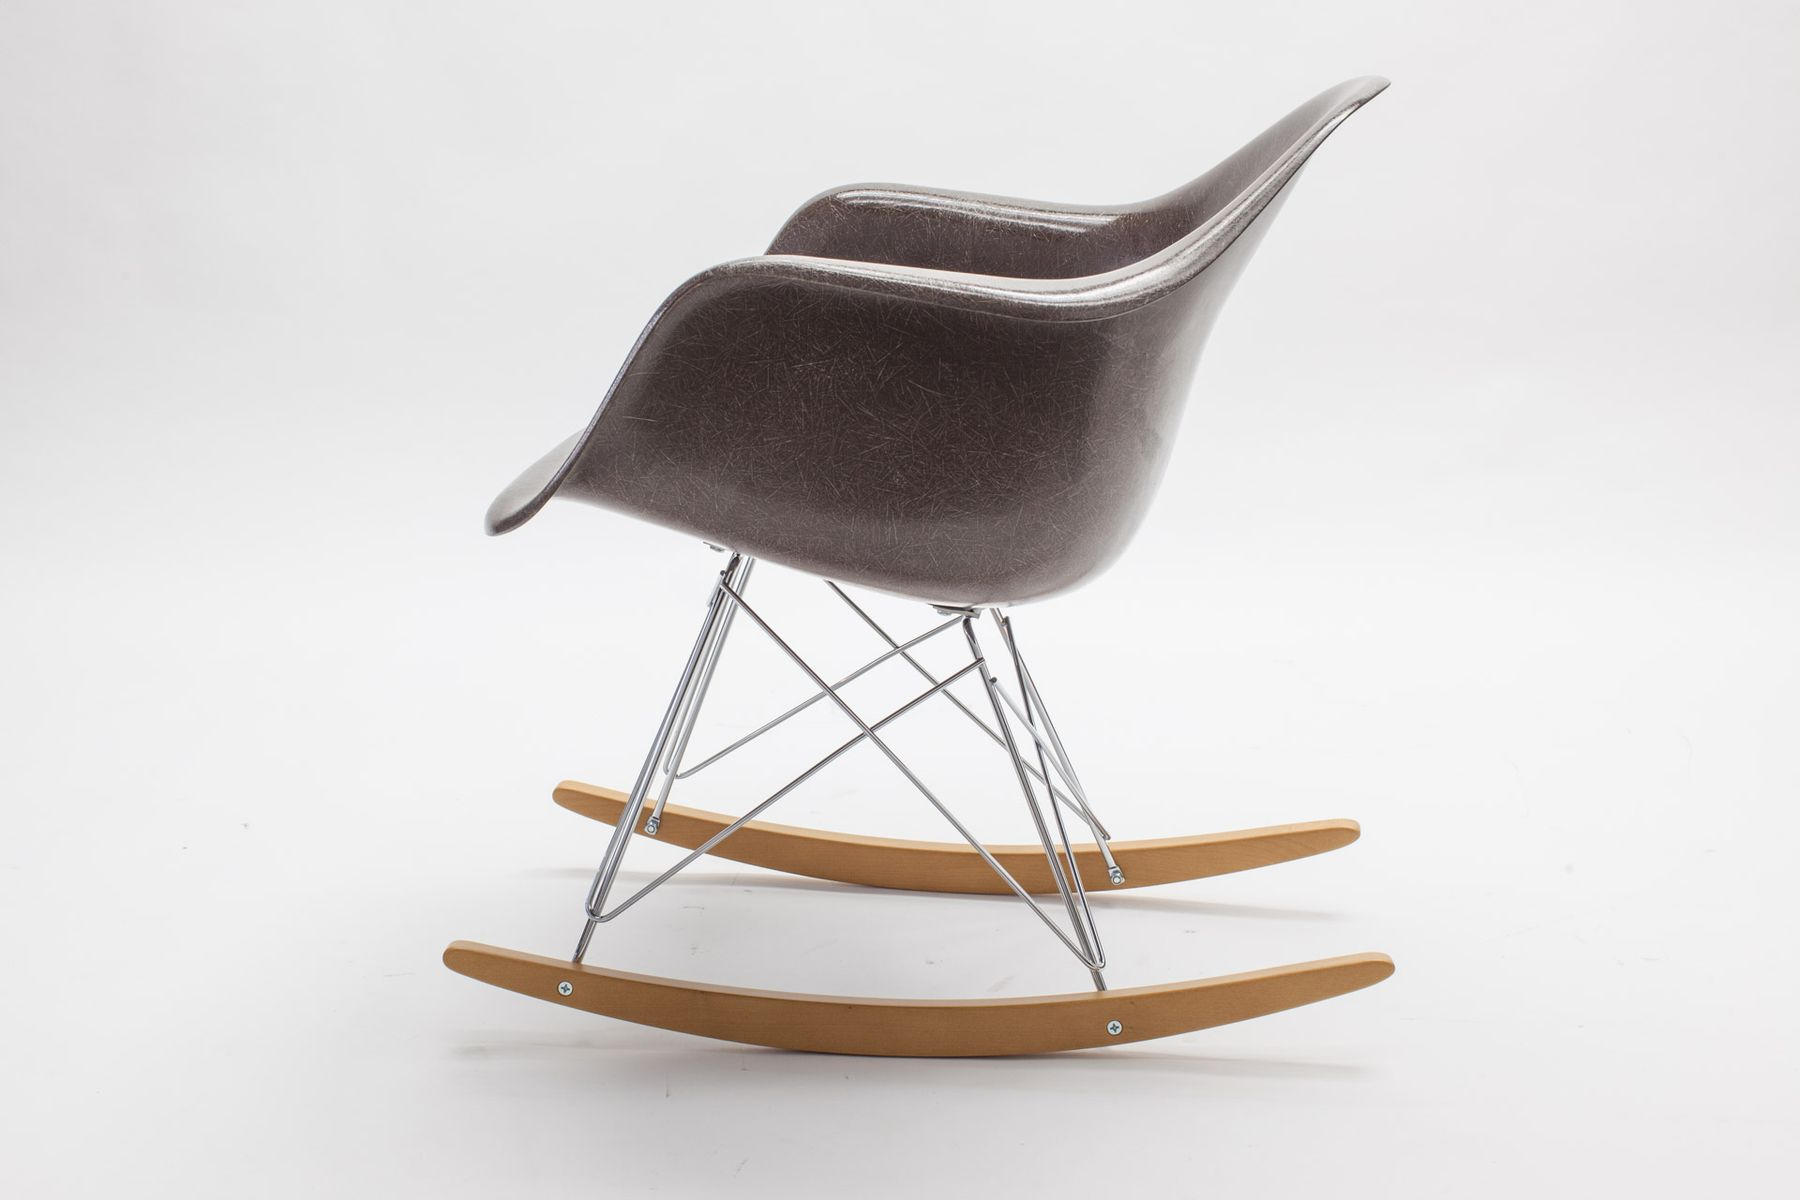 fiberglass rar rocking chair by charles eames for vitra. Black Bedroom Furniture Sets. Home Design Ideas